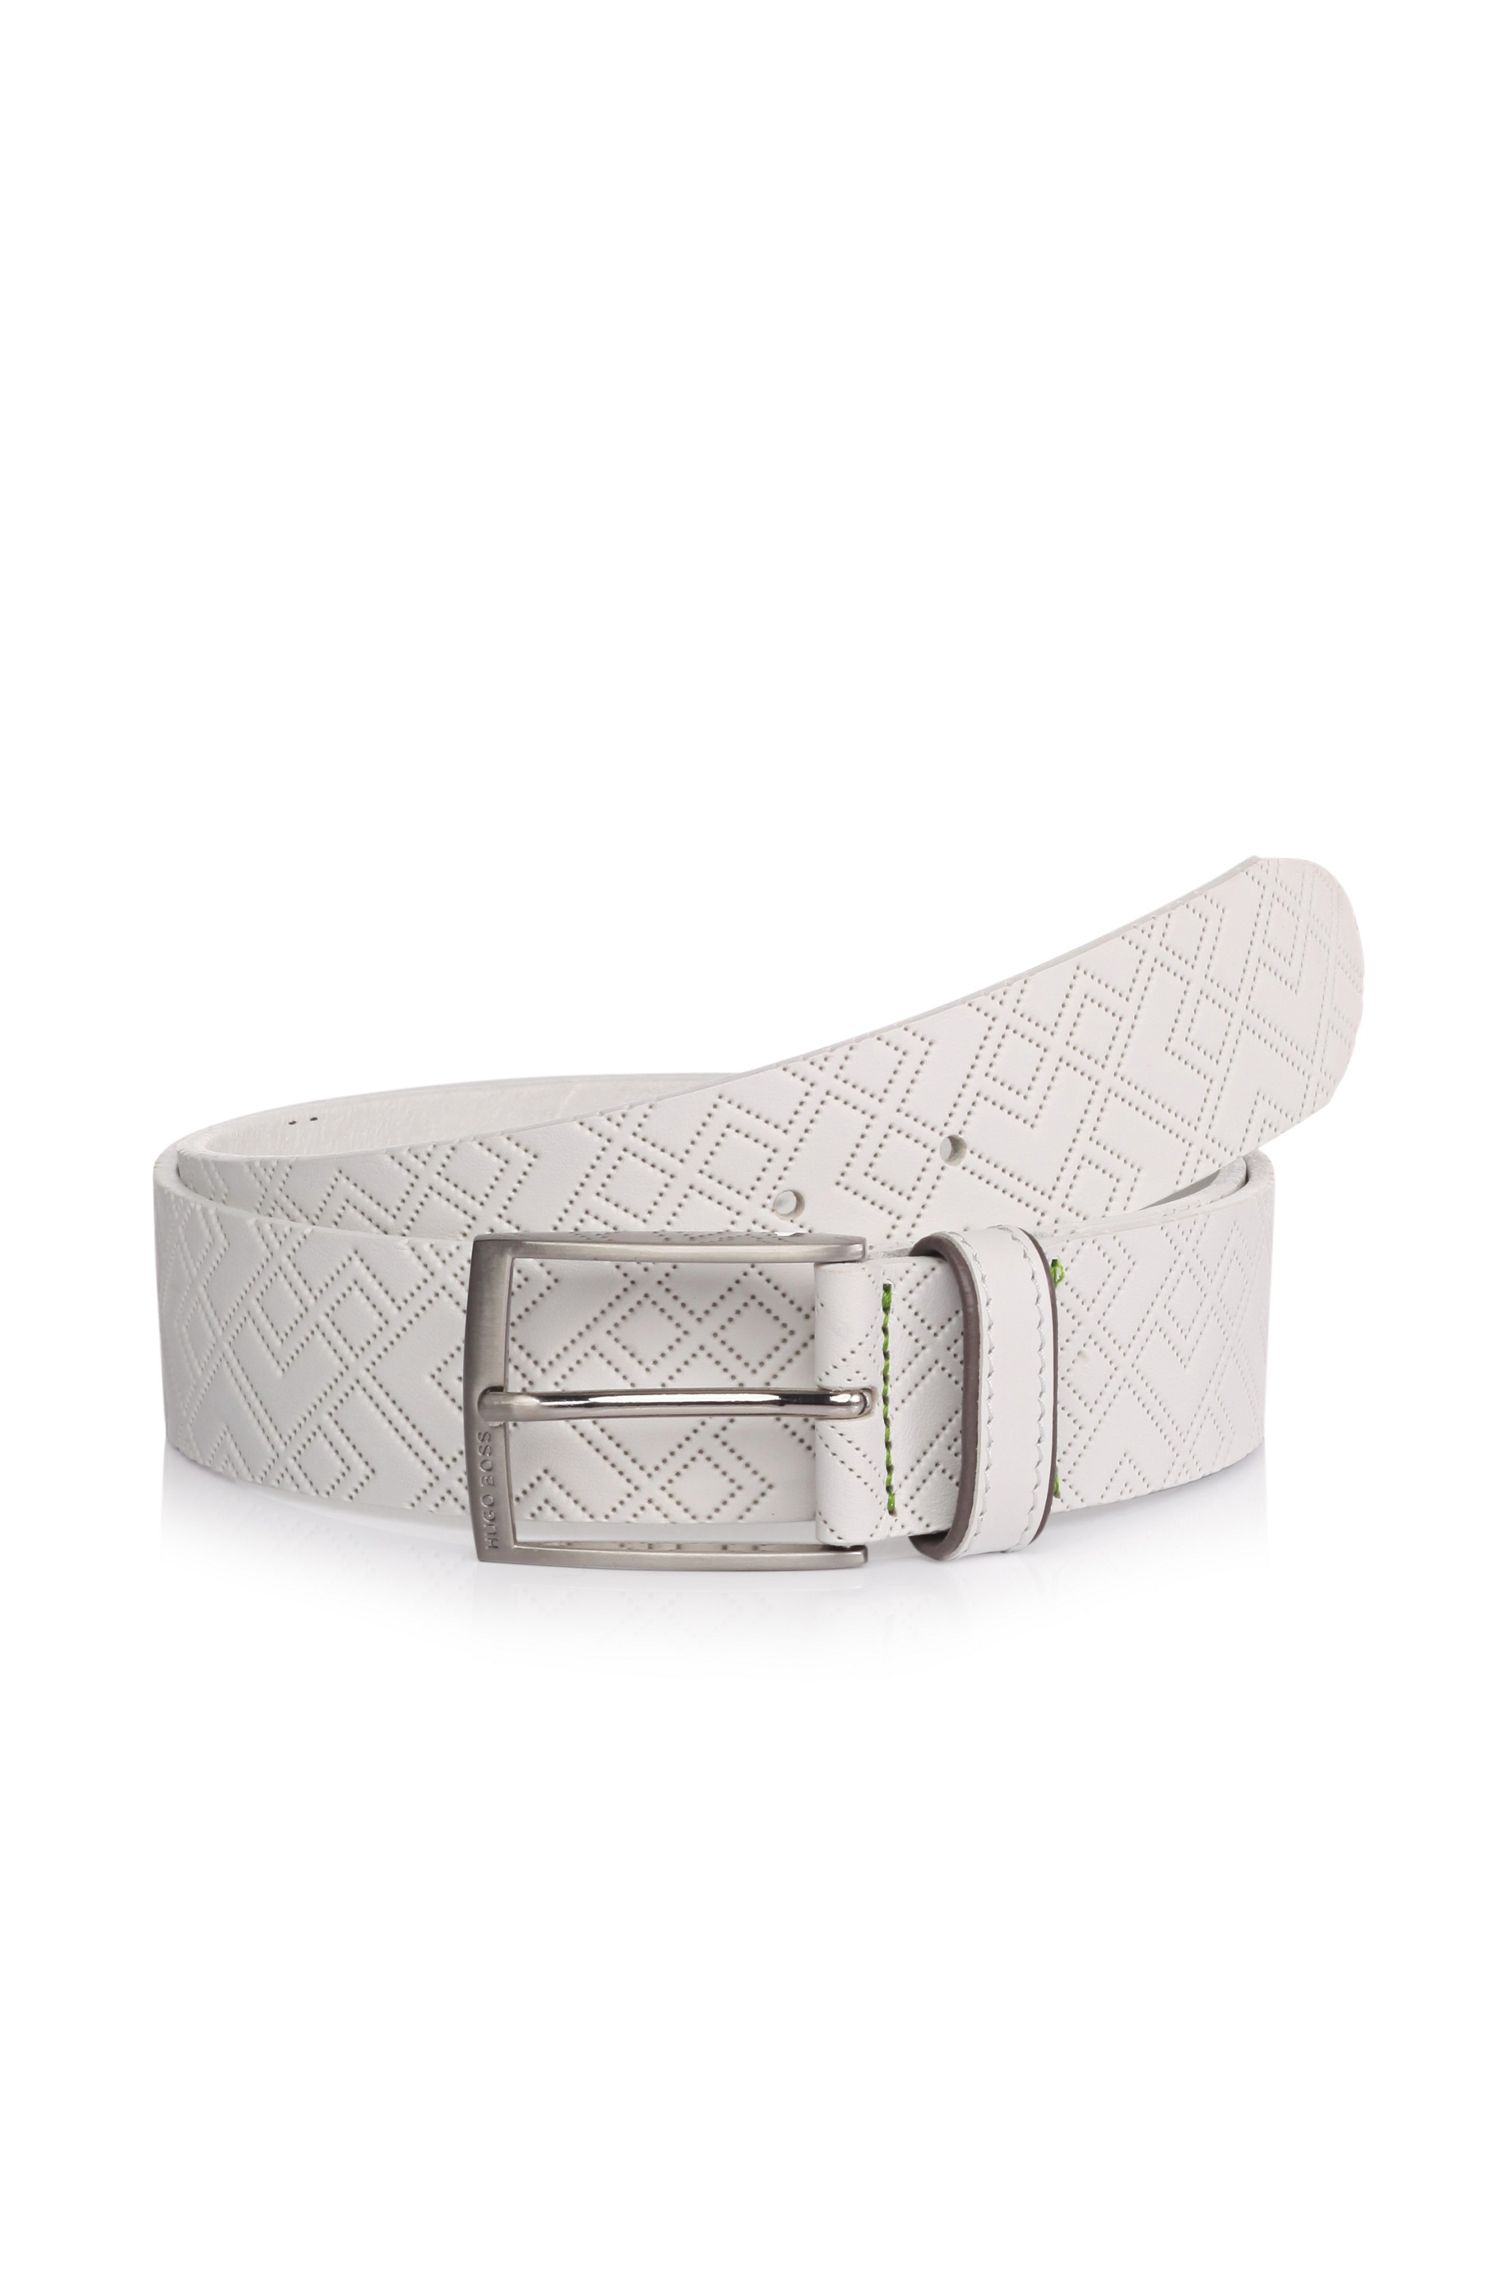 'Trover'   Leather Perforated Belt